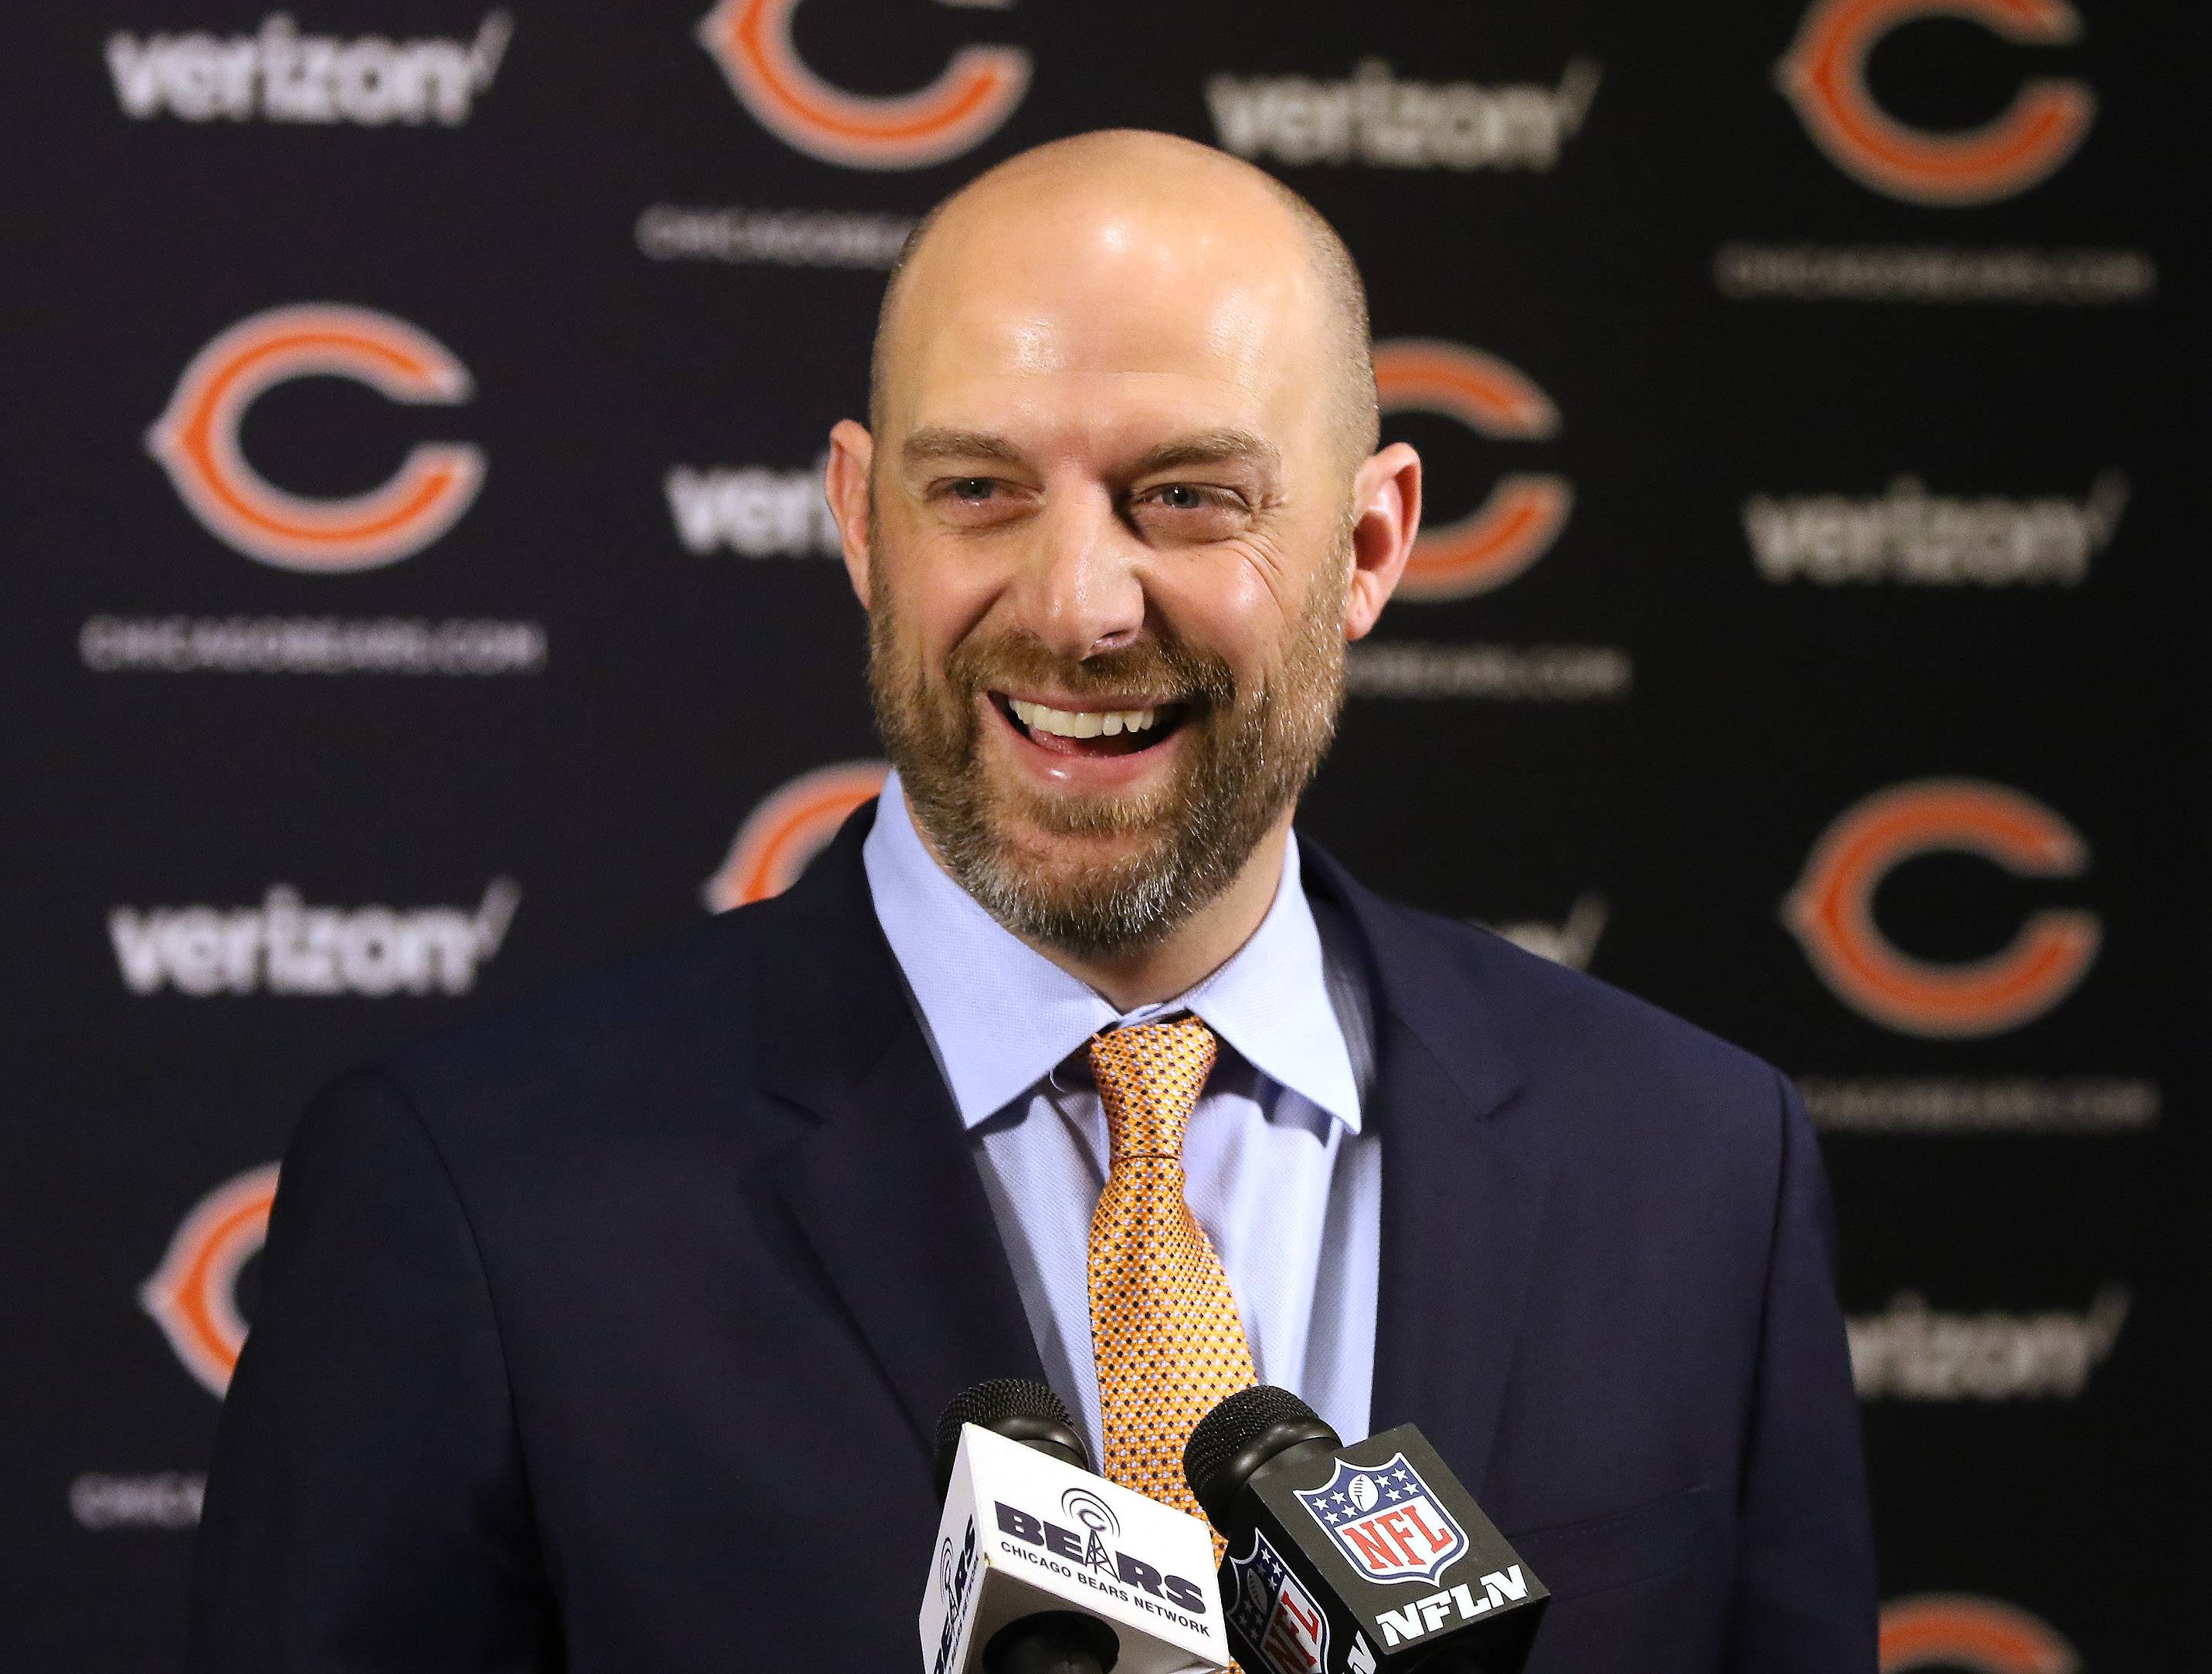 Matt Nagy, the newt Chicago Bears head coach, played quarterback for six seasons in the Arena Football League.